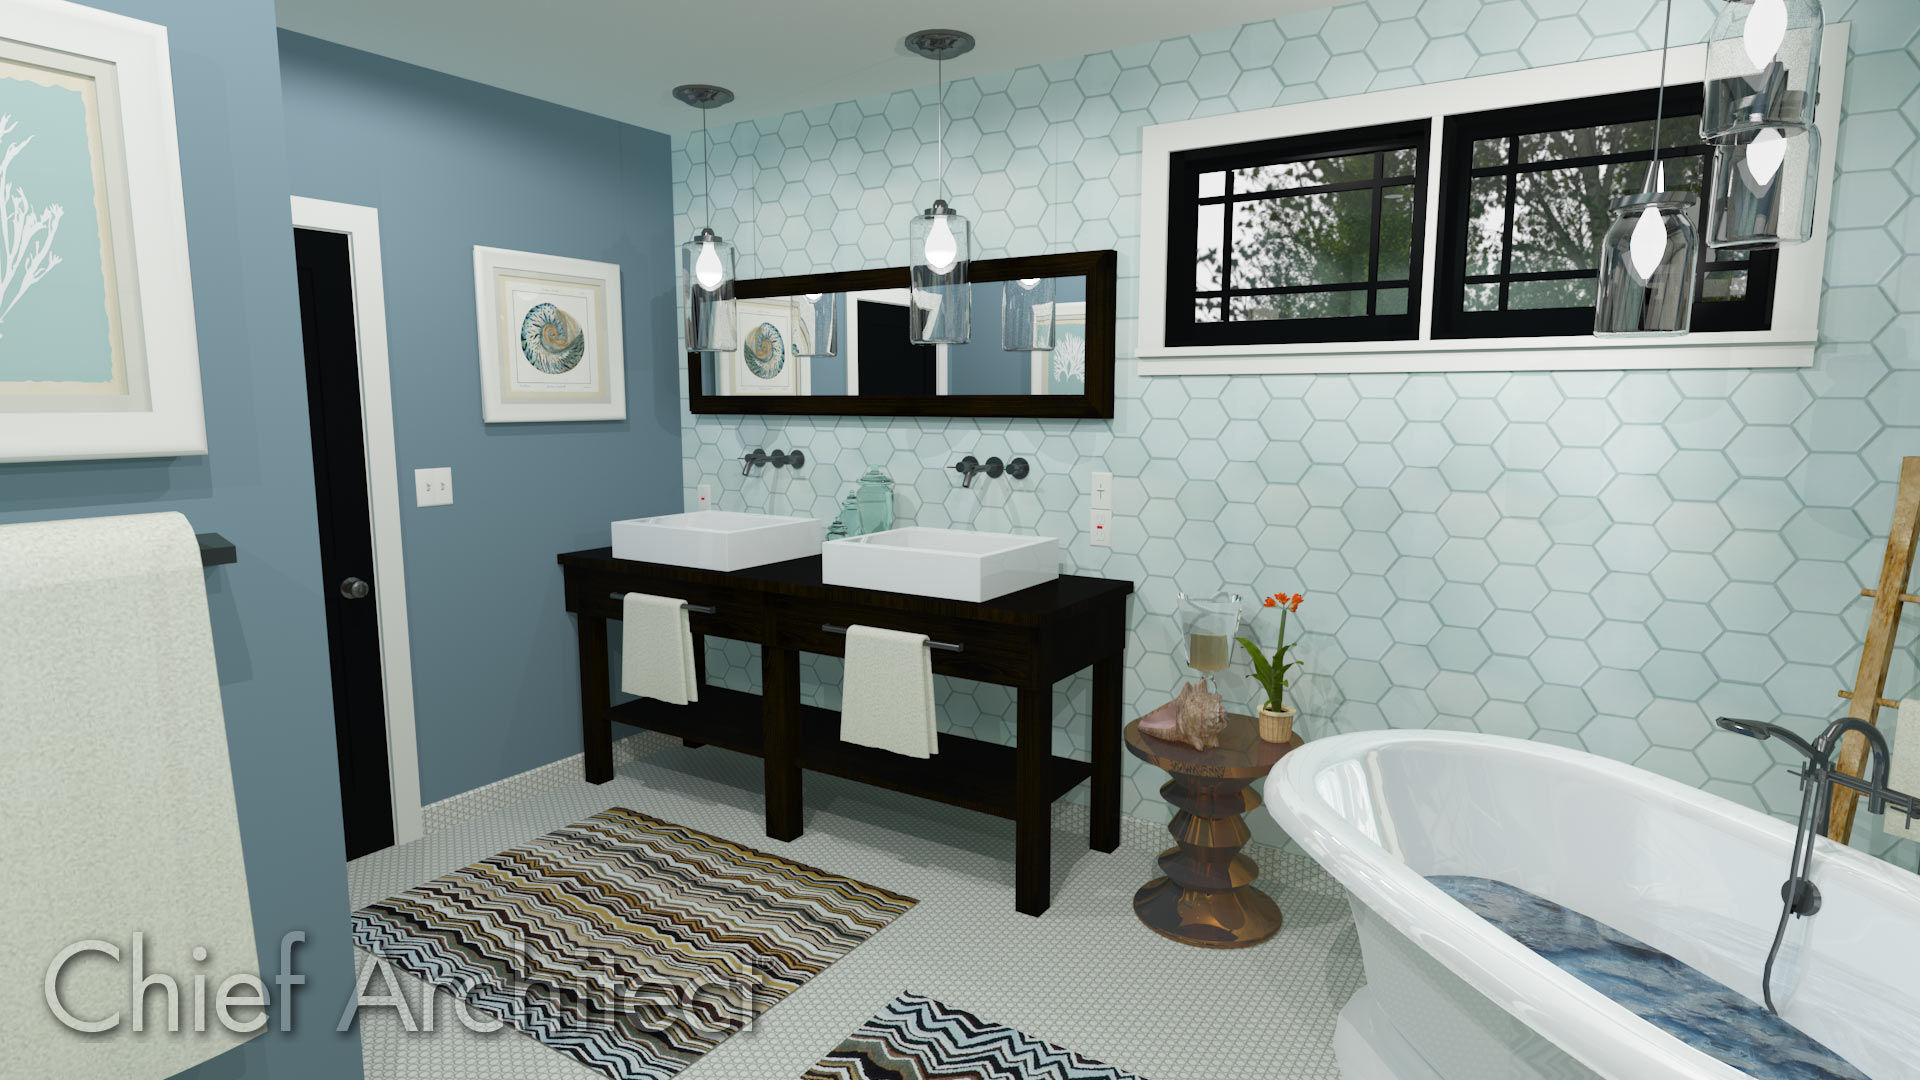 This blue bathroom looks as though it belongs on the seaside with